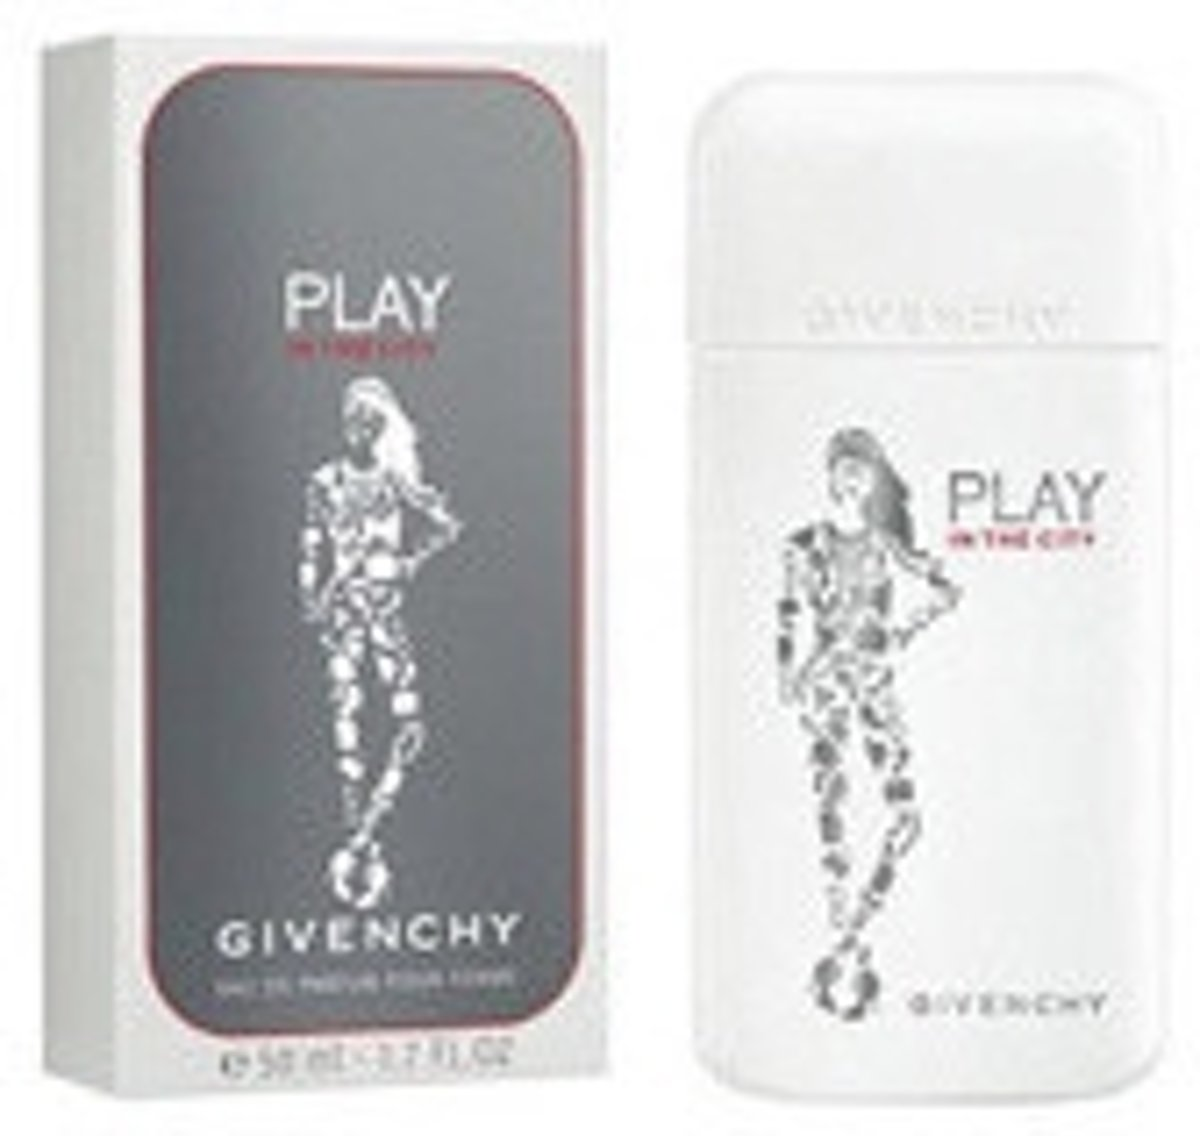 Givenchy Play In The City EDP 50 ml